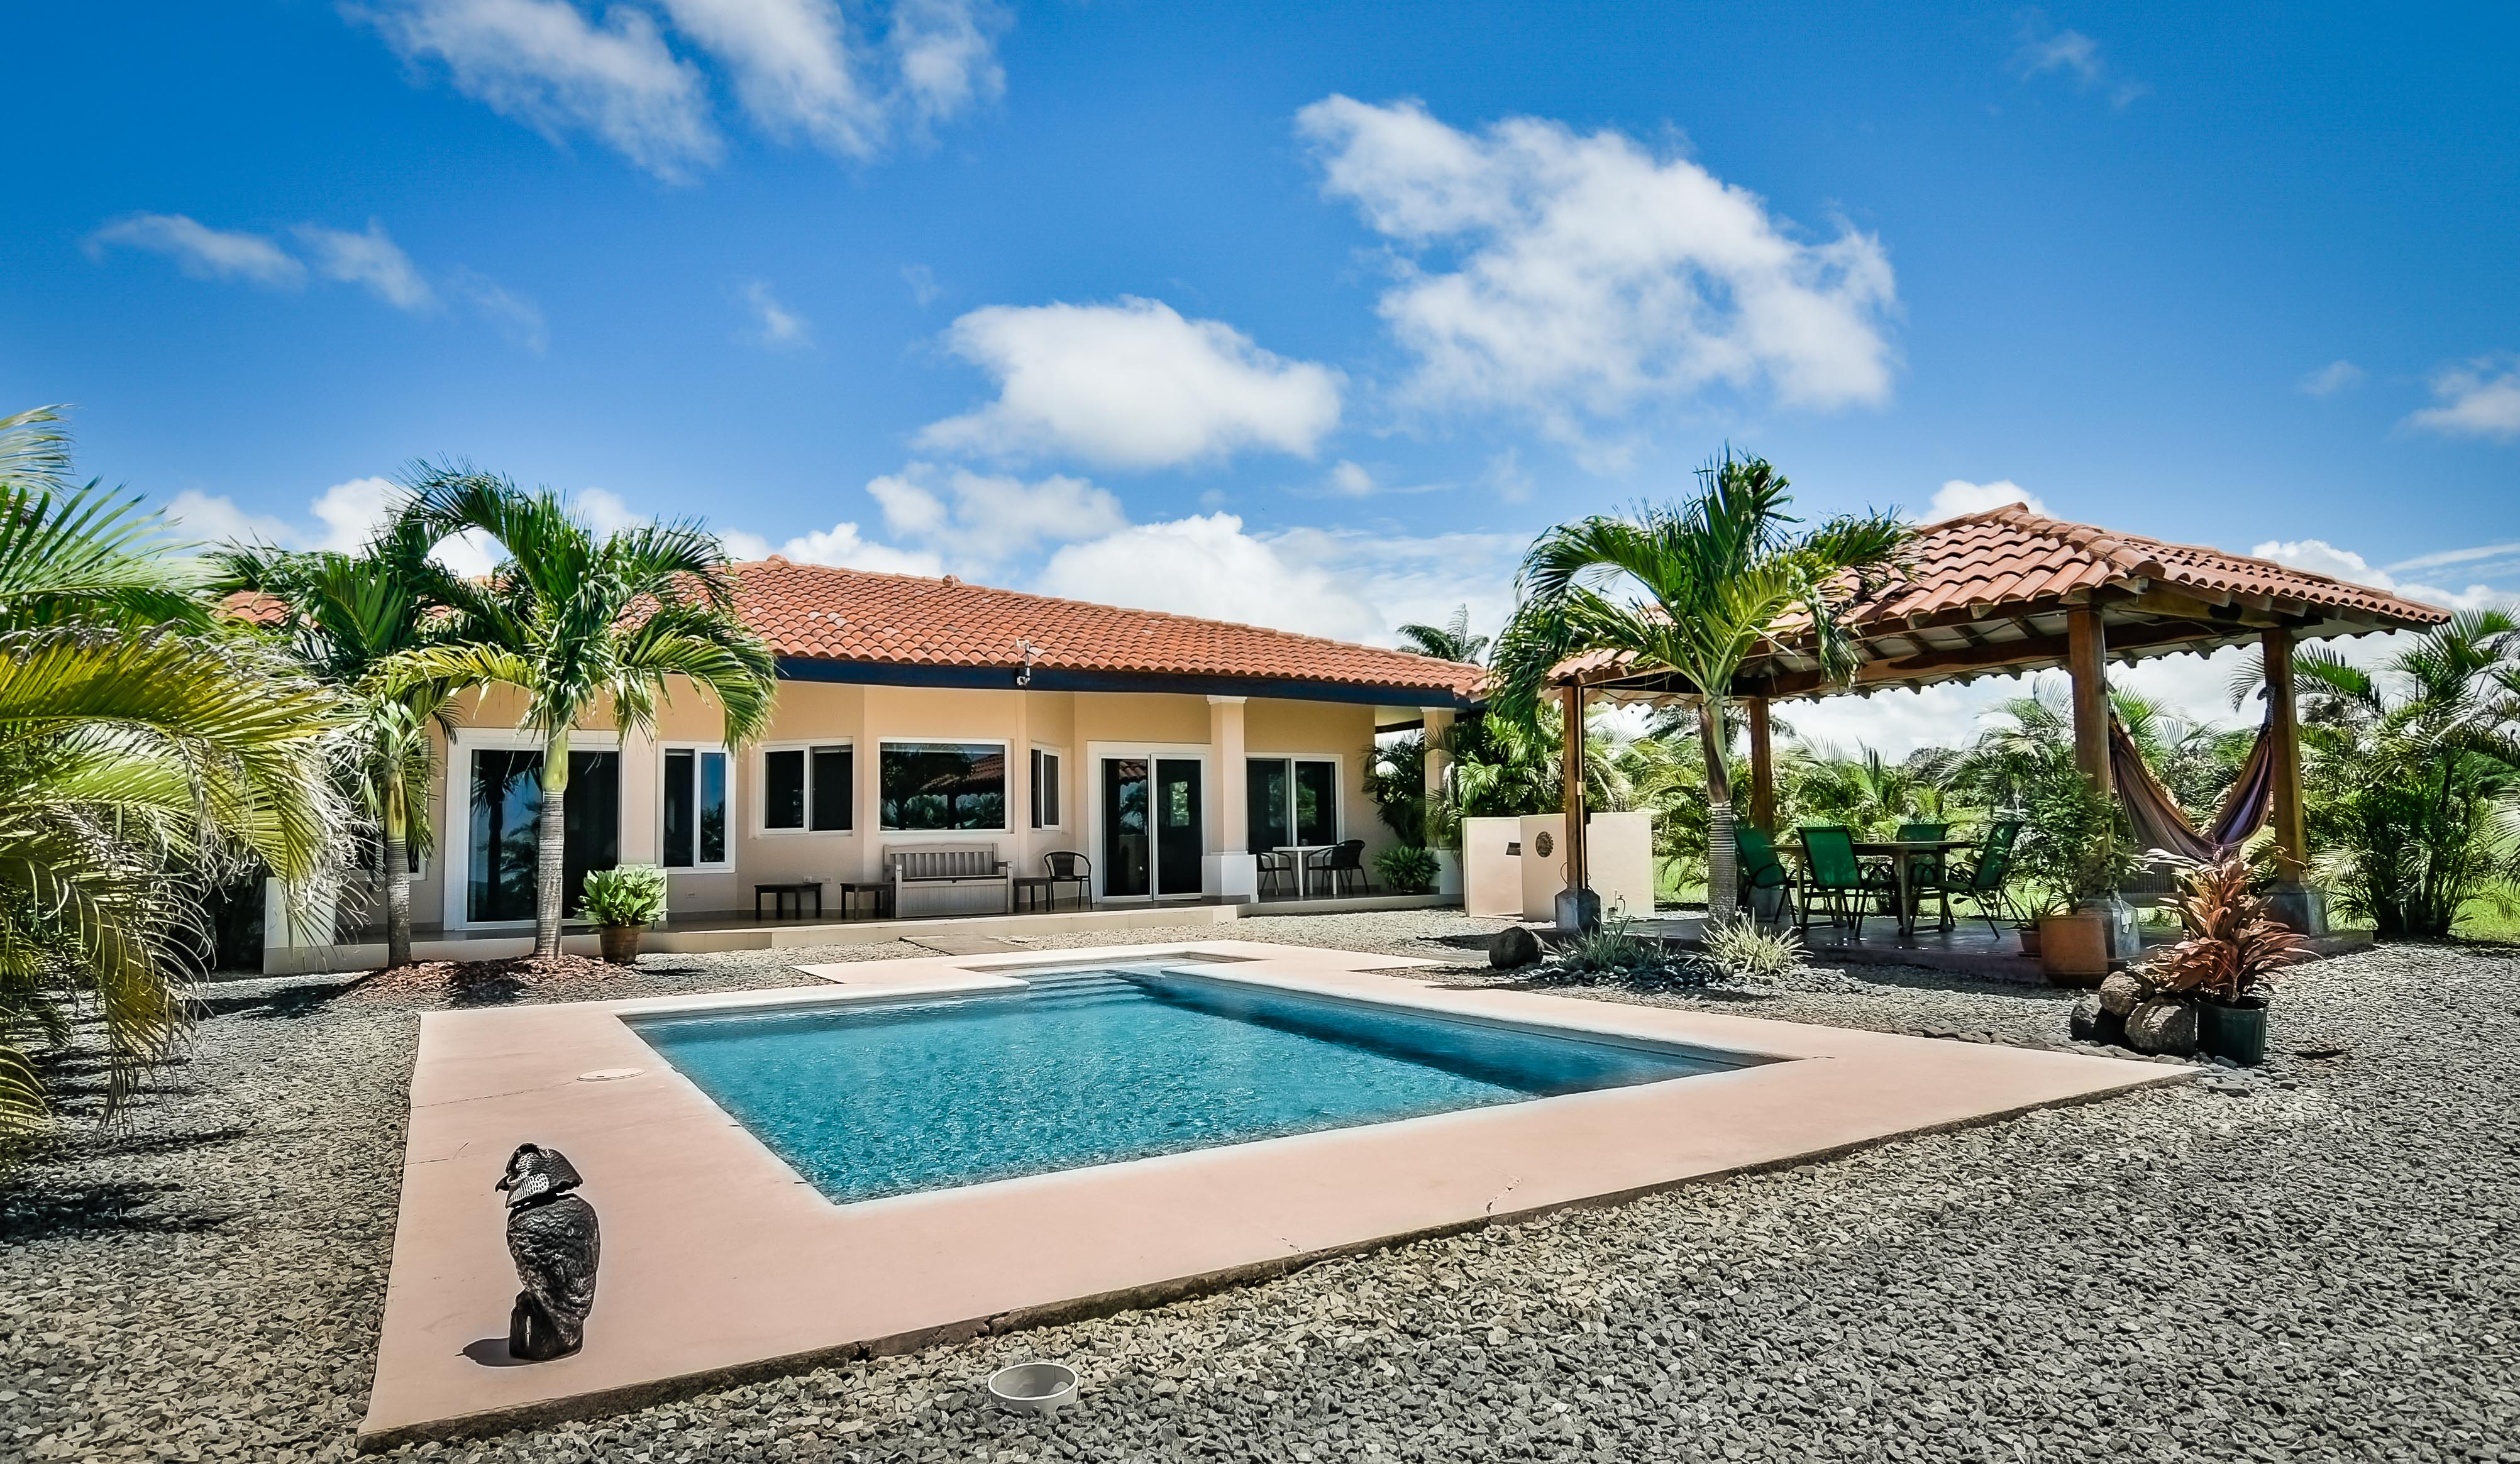 Turnkey ocean view home in Pedasi gated community